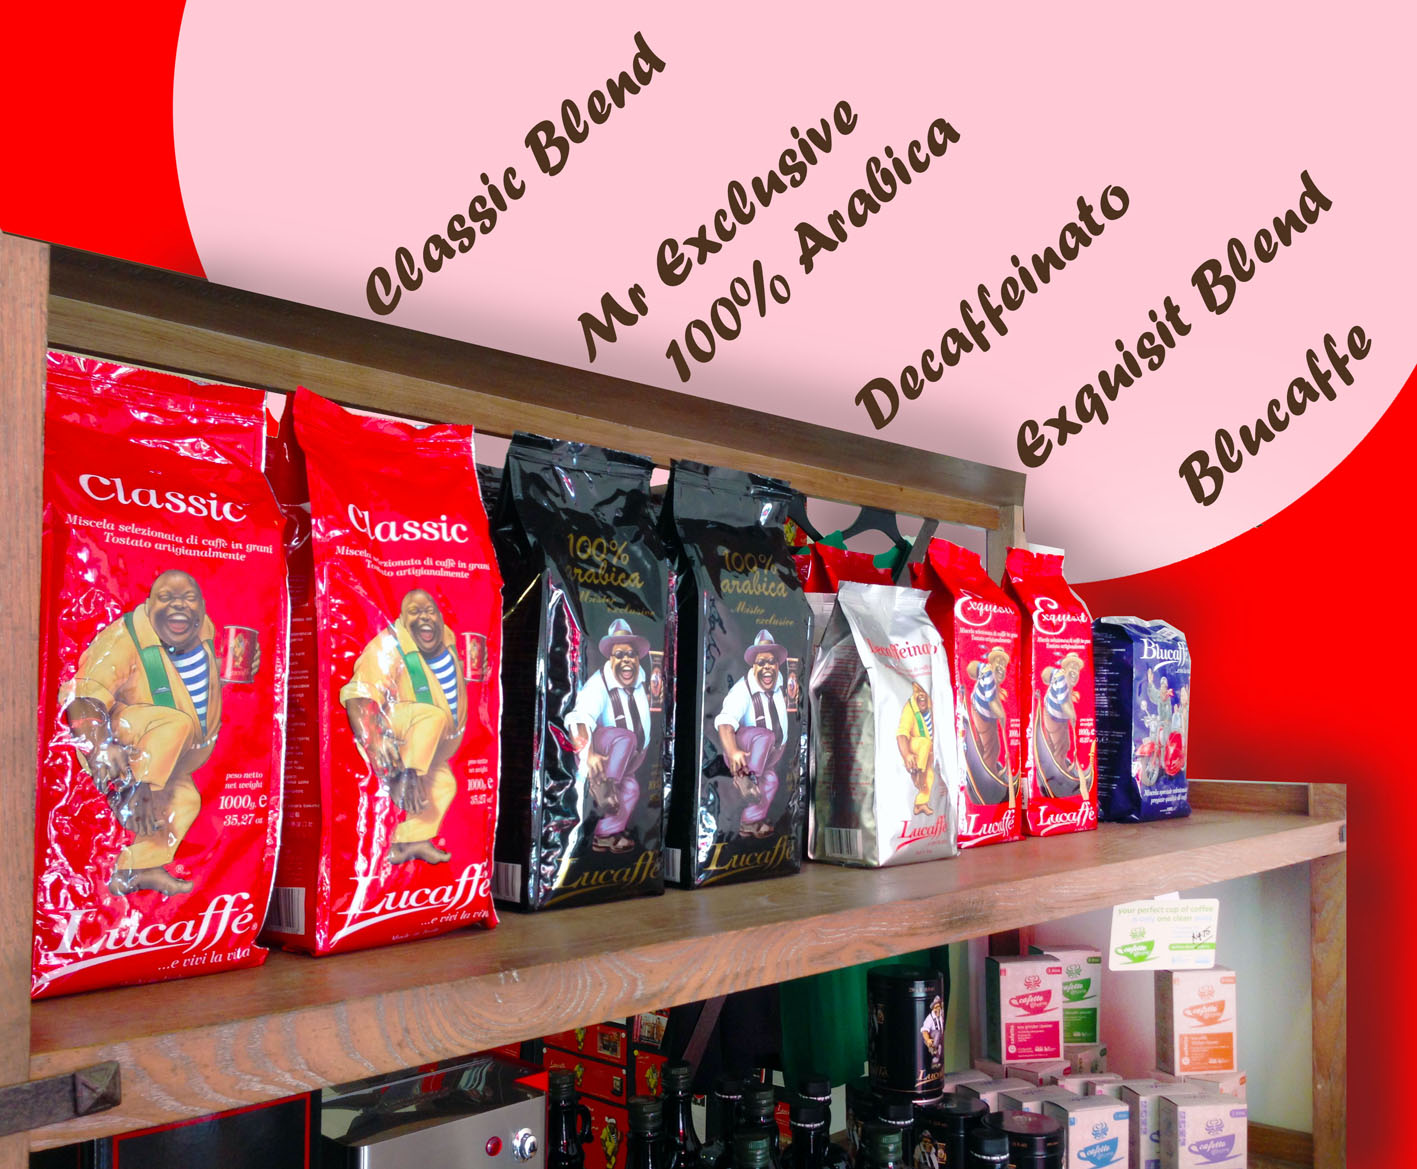 Lucaffe coffee beans in showroom with labels